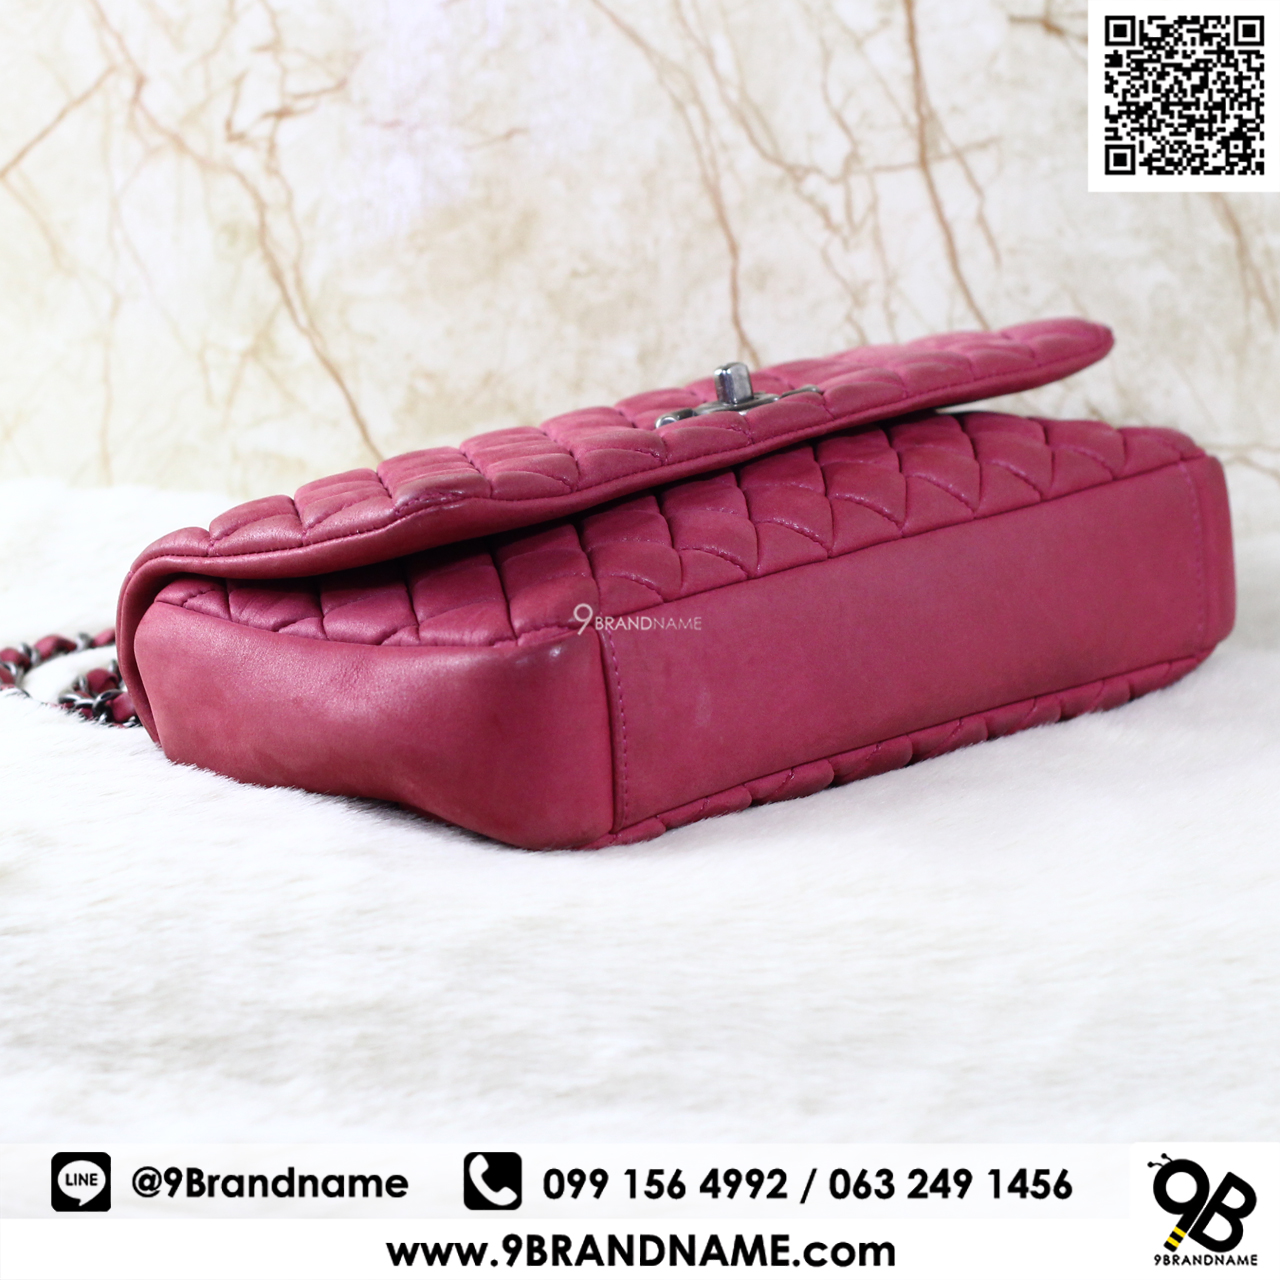 eb66d6ff890e Chanel Flap Bag Calfskin Suede Red SHW Size10 - 9brandname